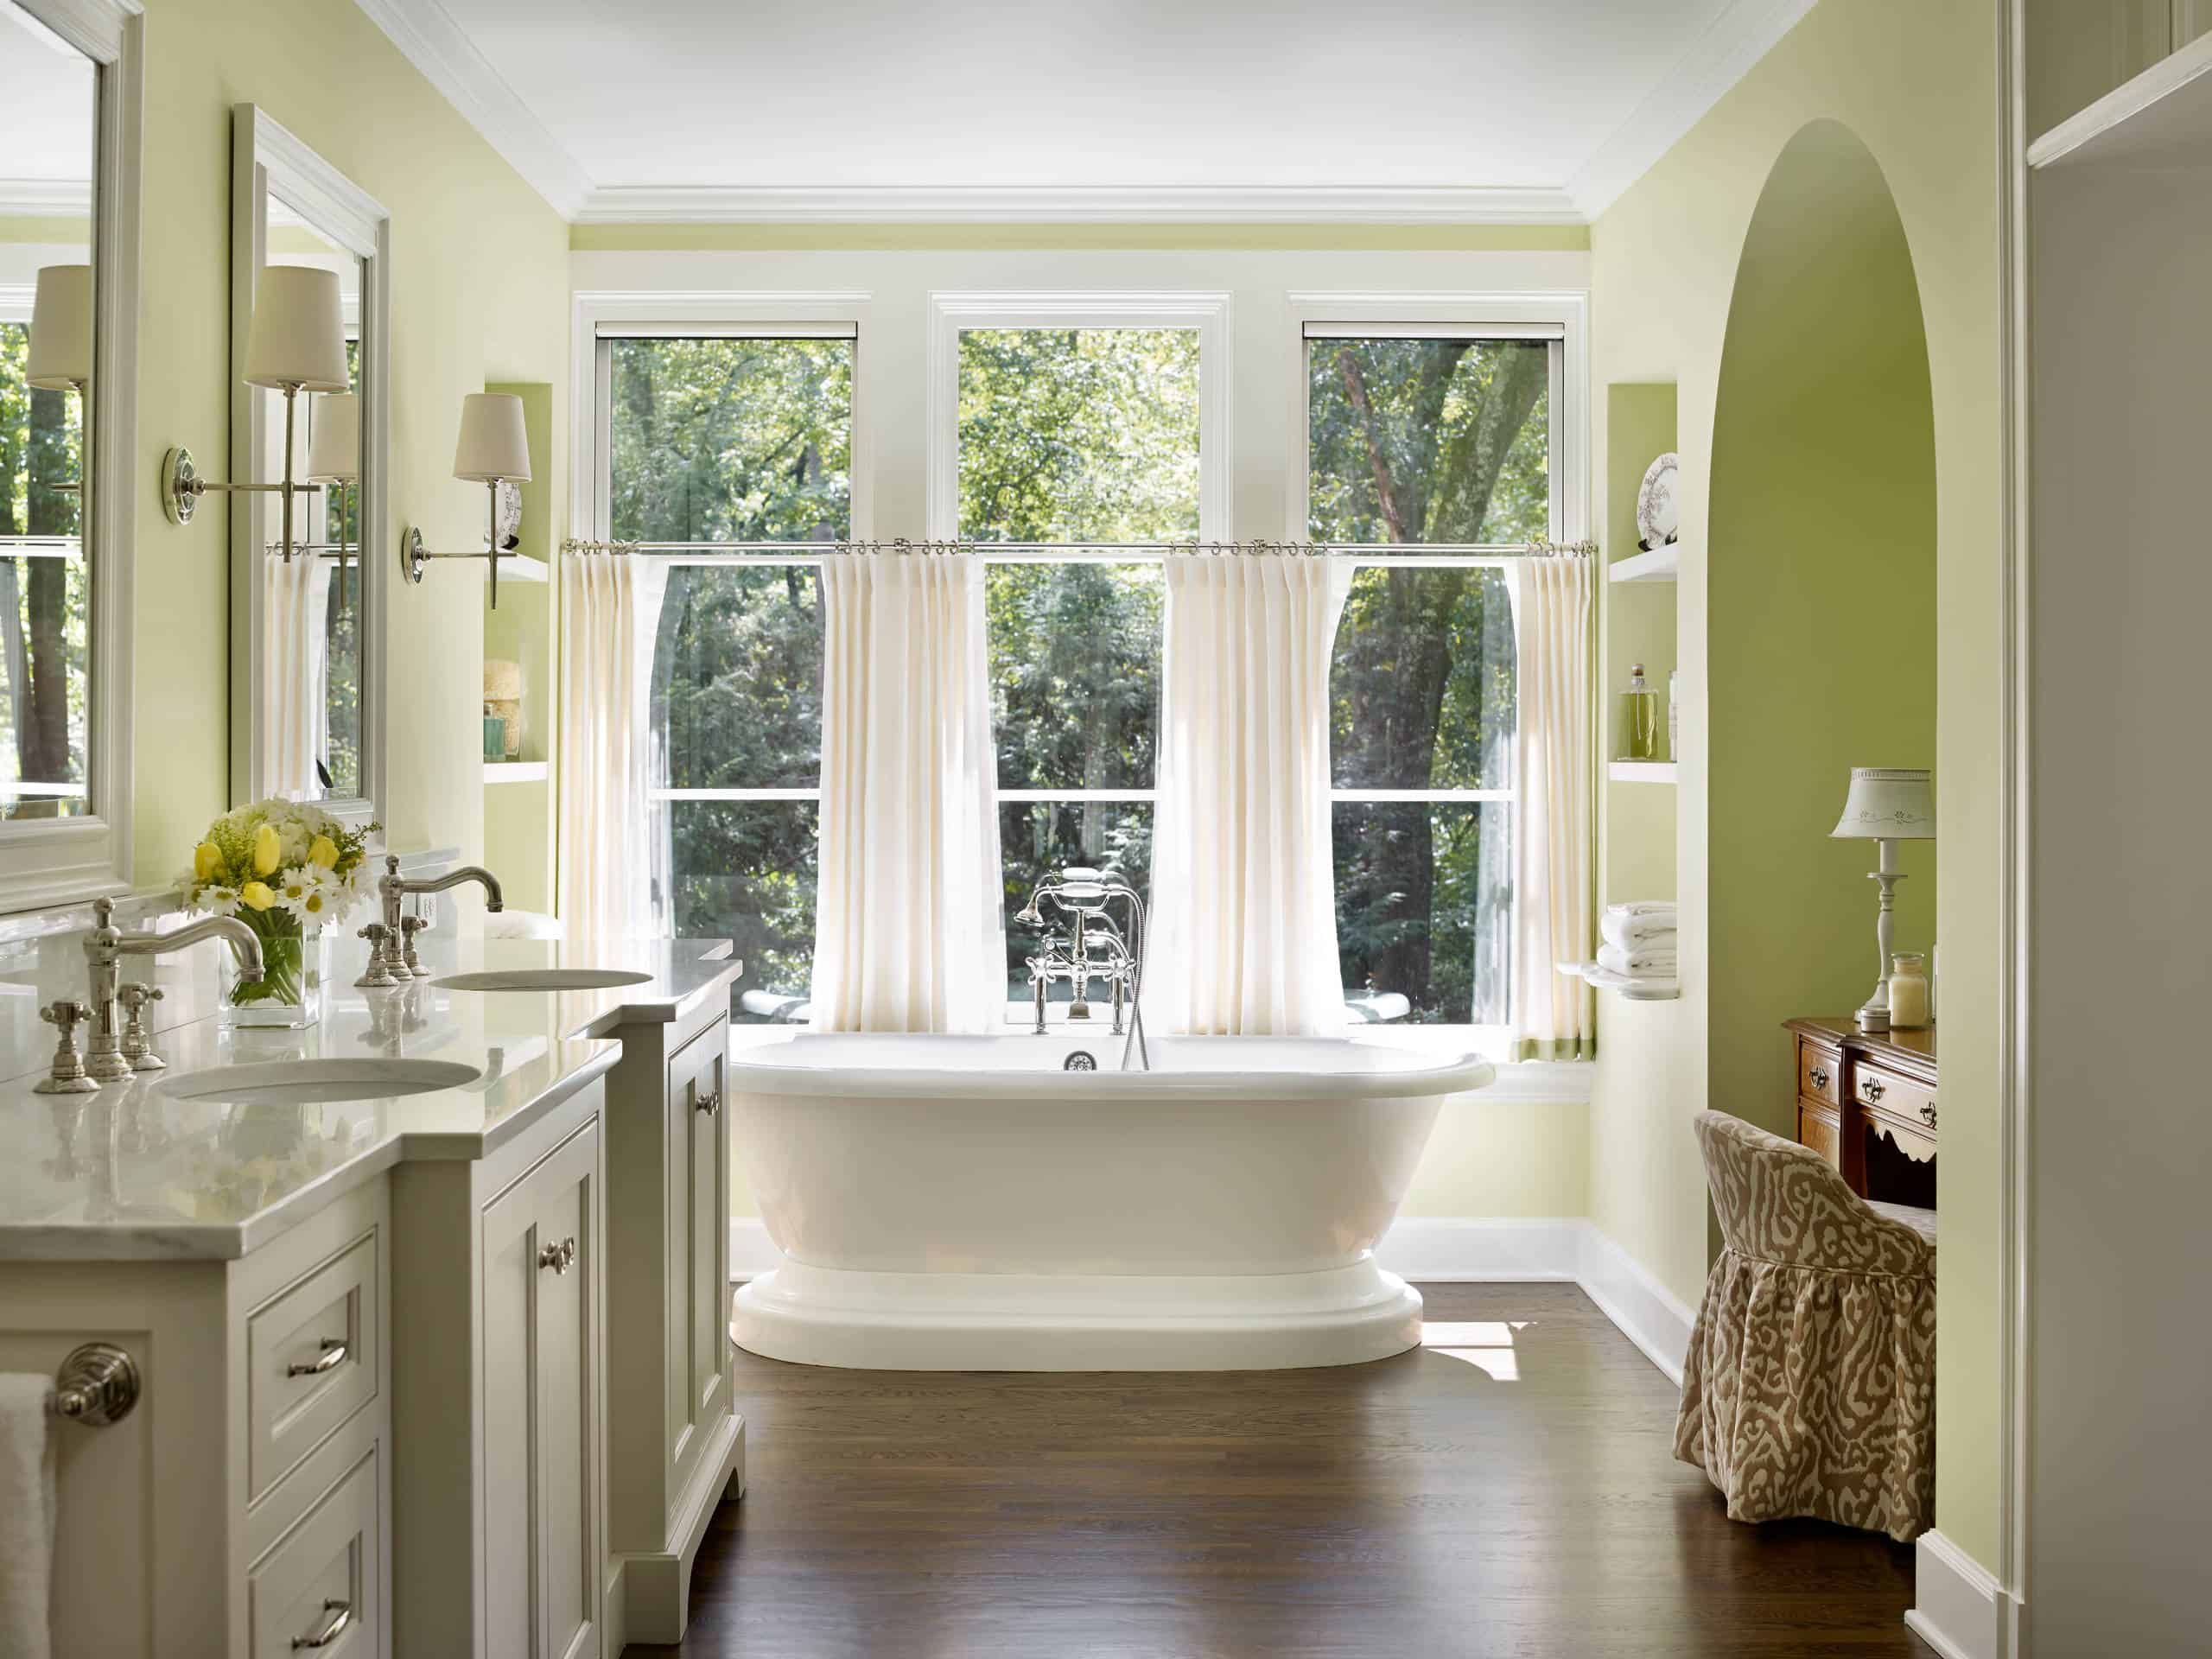 Bathroom Windows tips & ideas for choosing bathroom window curtains (with photos!)